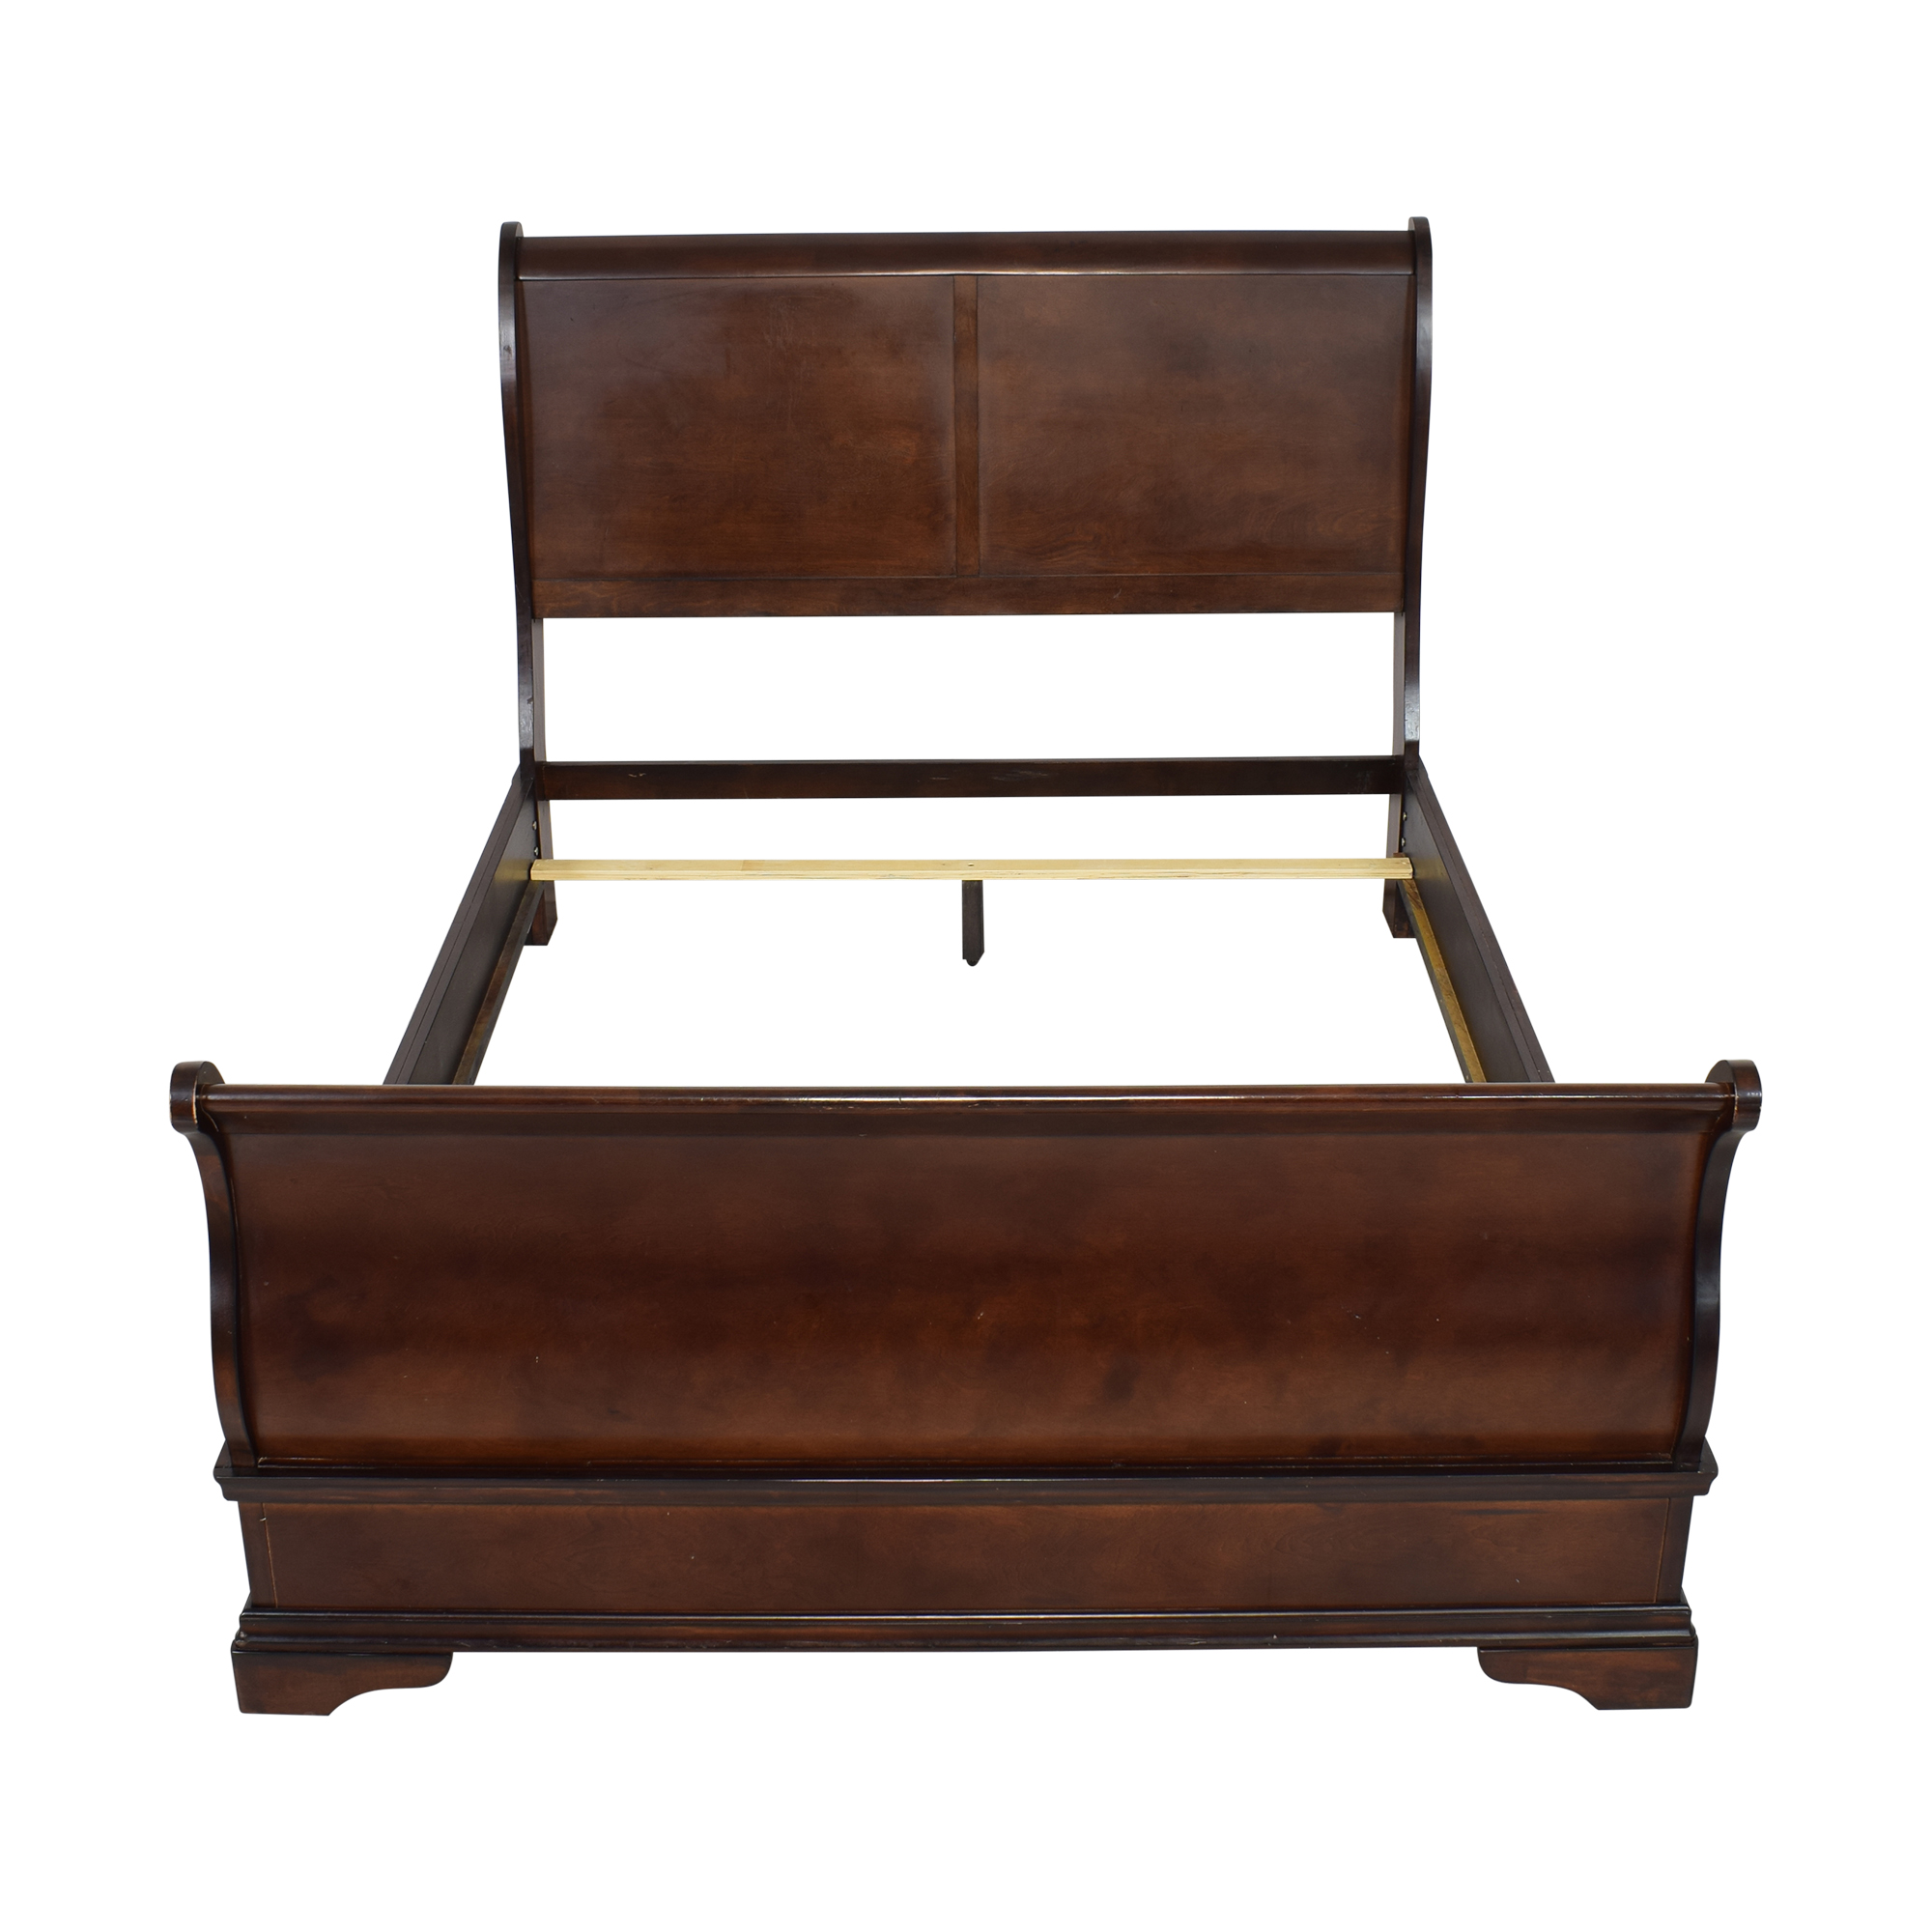 buy Raymour & Flanigan Raymour & Flanigan Queen Bed online